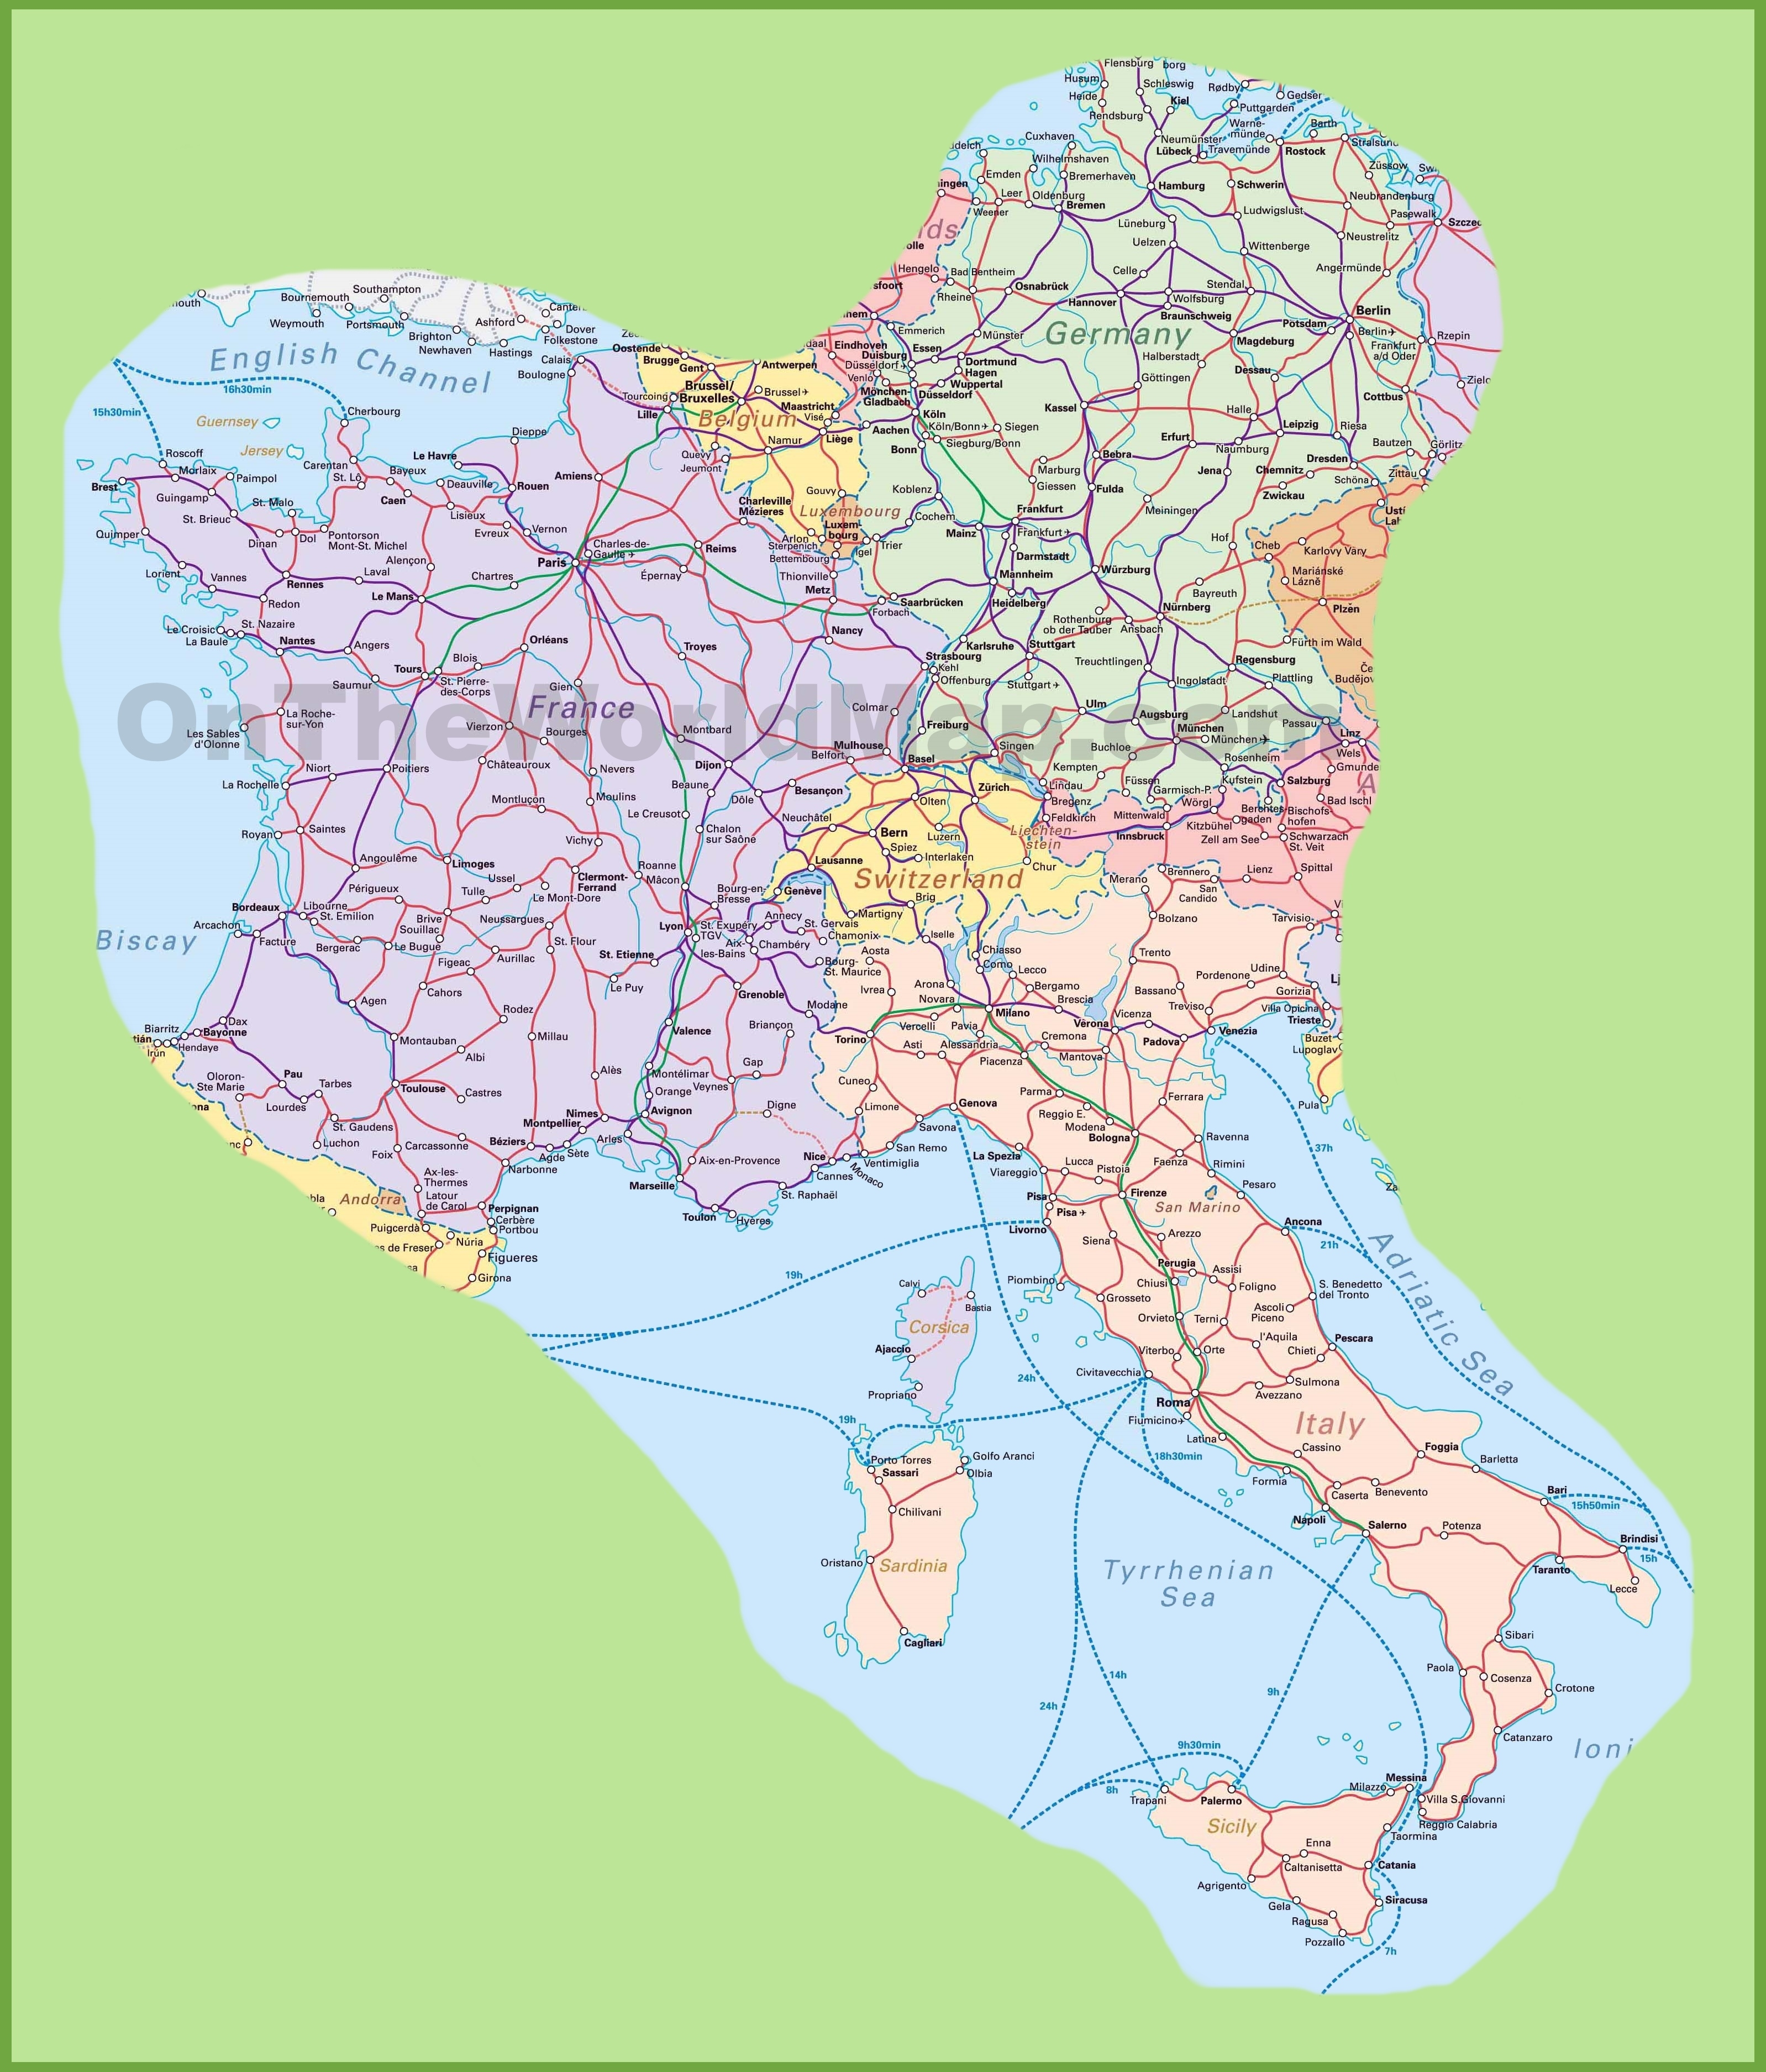 Map Of Switzerland, Italy, Germany And France for France Germany Switzerland Map